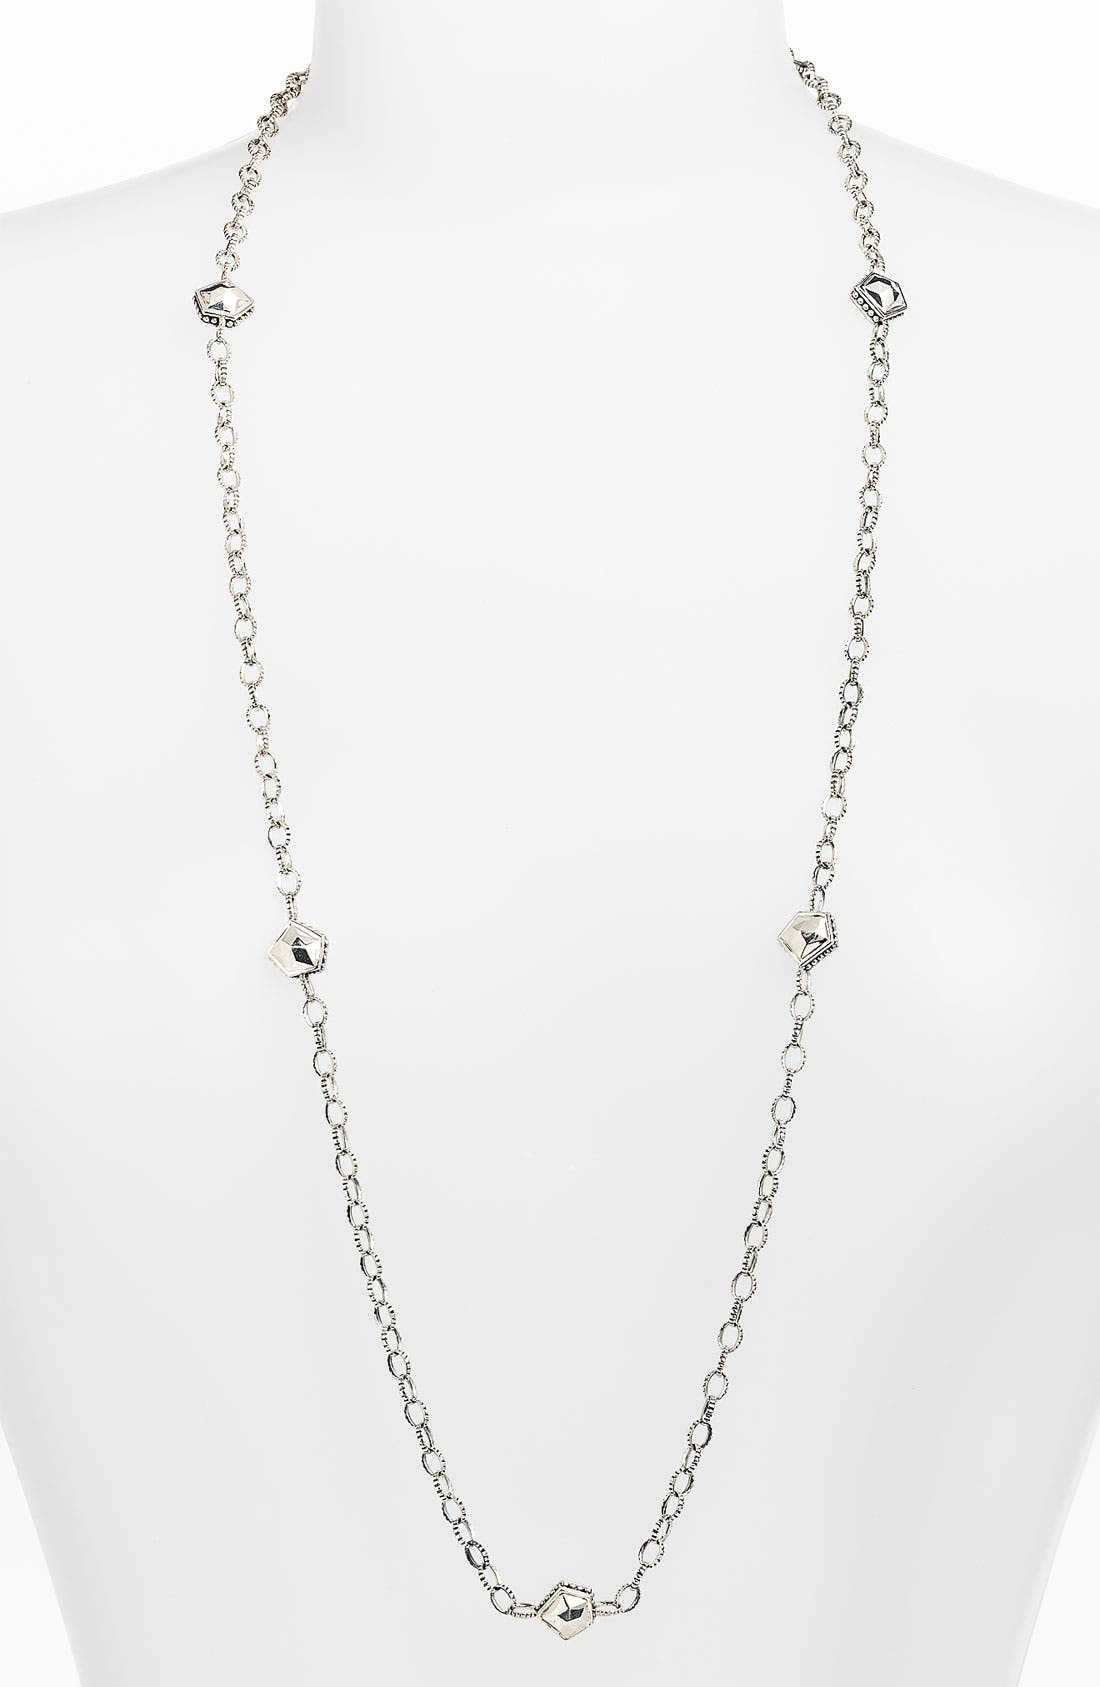 Alternate Image 1 Selected - LAGOS 'Silver Rocks' Long Station Necklace